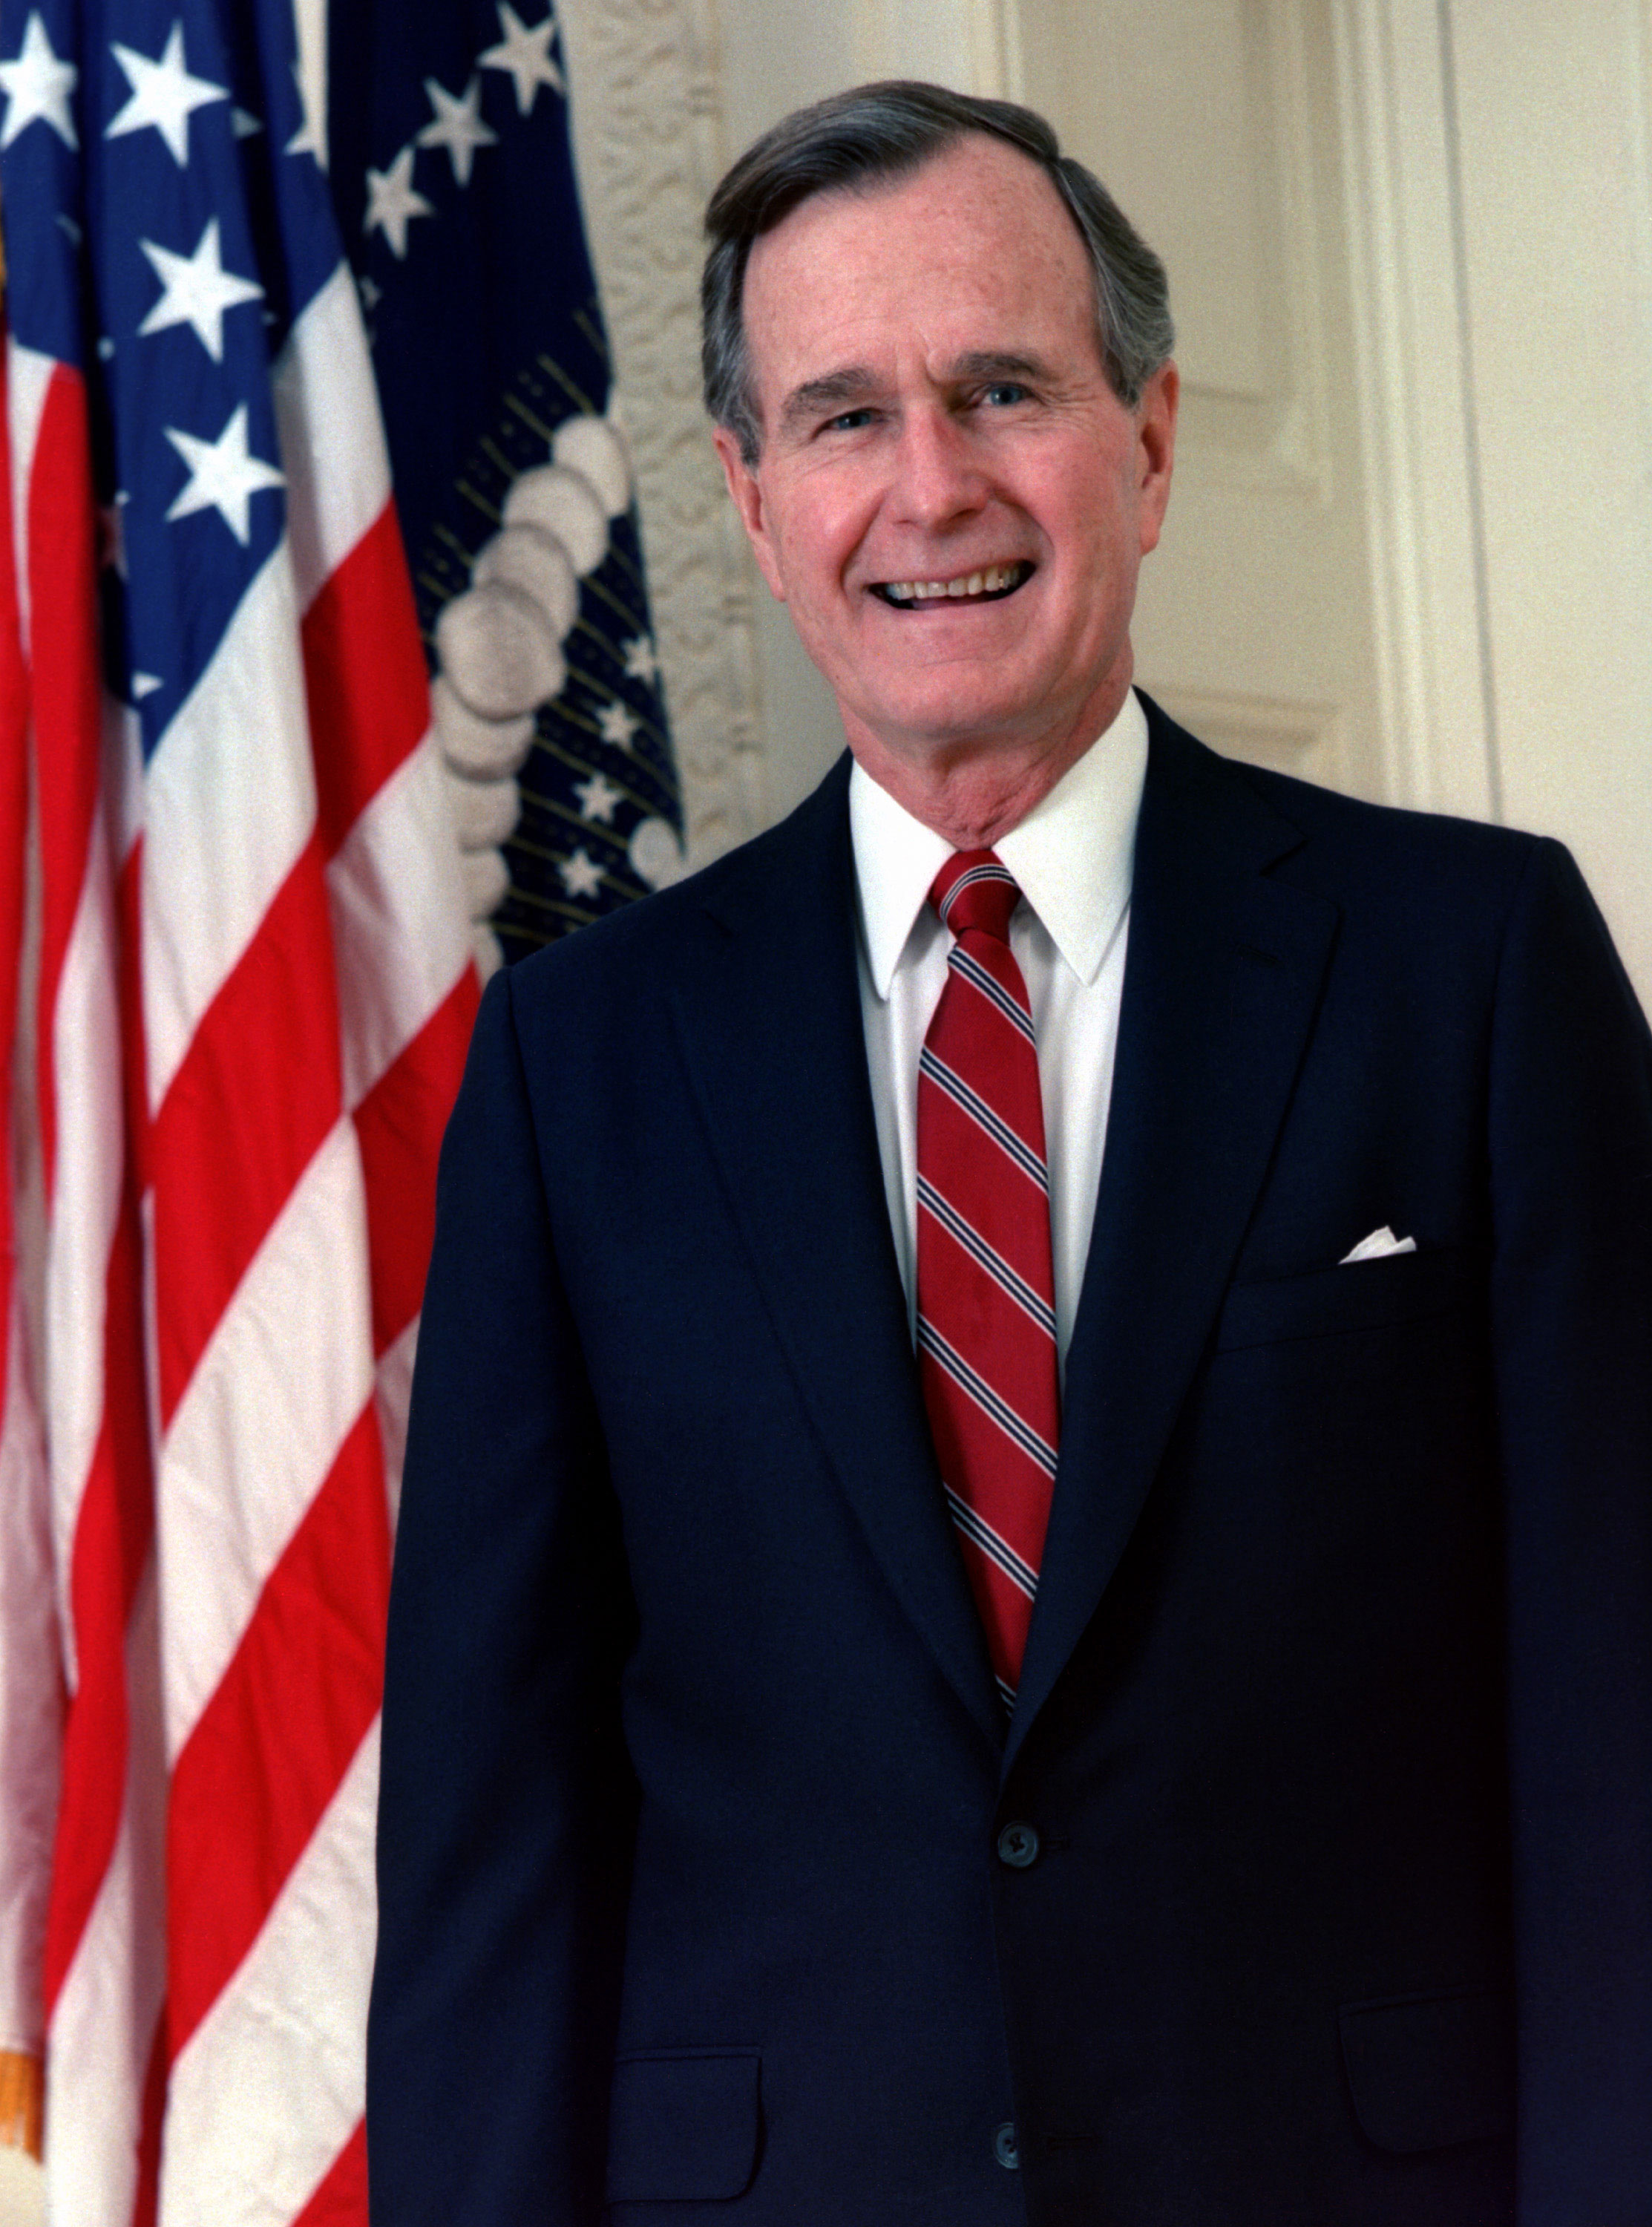 George_H._W._Bush%2C_President_of_the_United_States%2C_1989_official_portrait.jpg